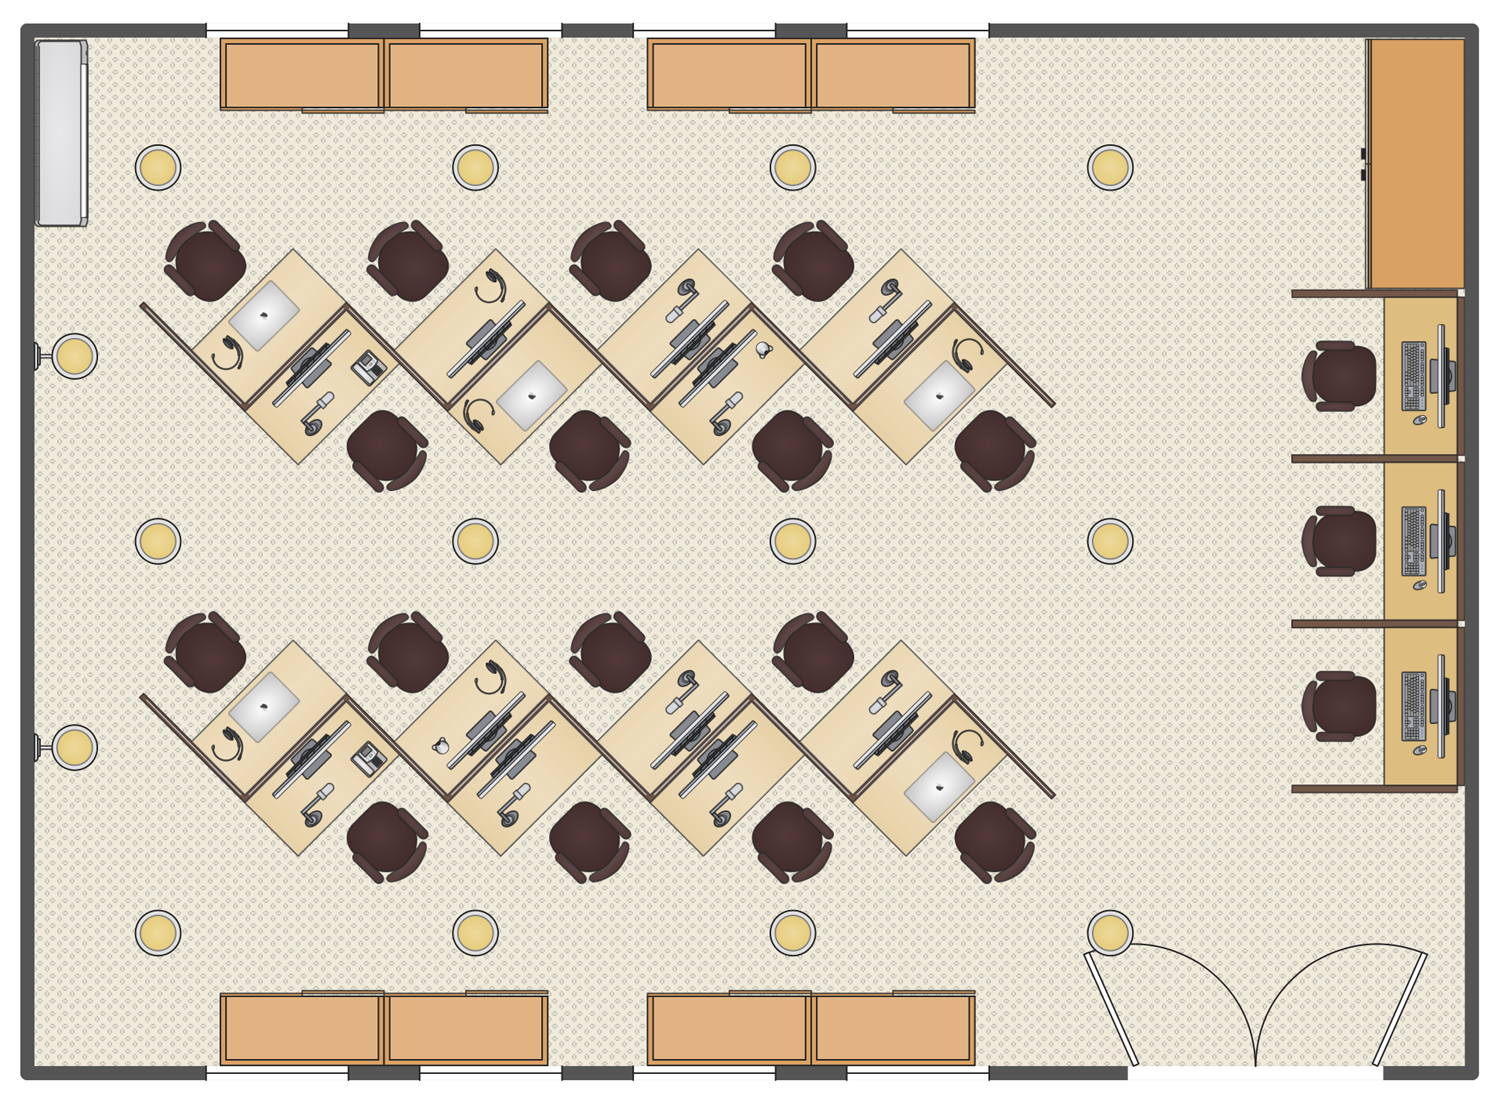 Call Center Plan Office Layout Plan Office Layout Office Space Planning